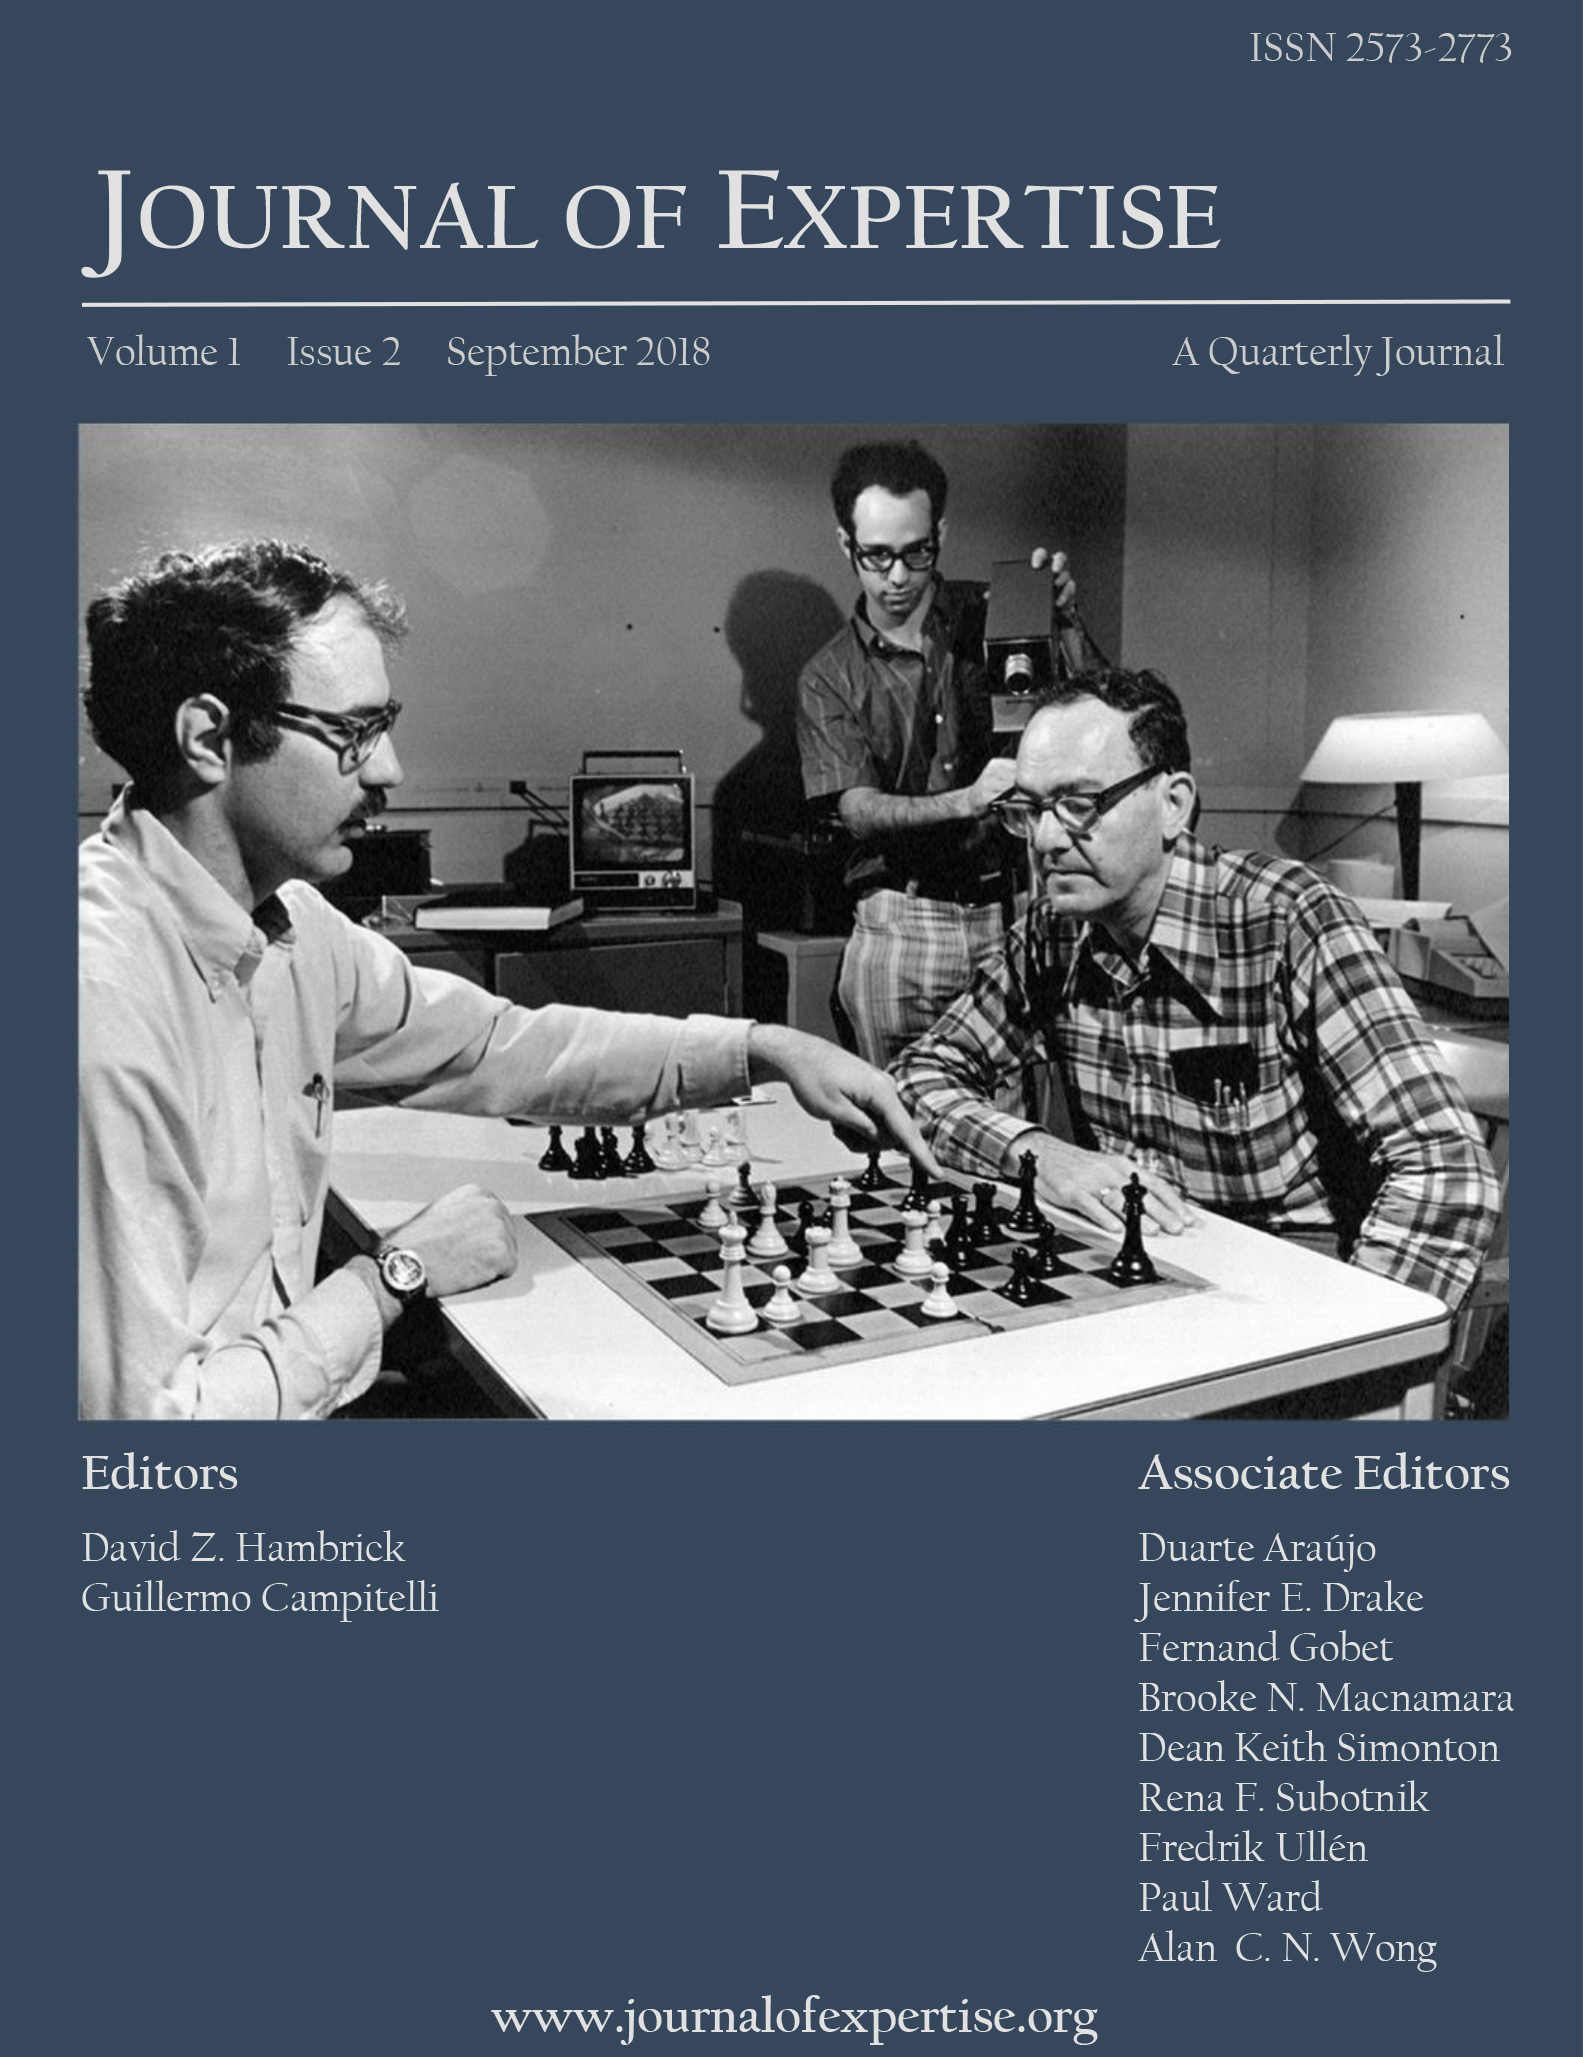 Journal of Expertise Volume 1 Issue 2